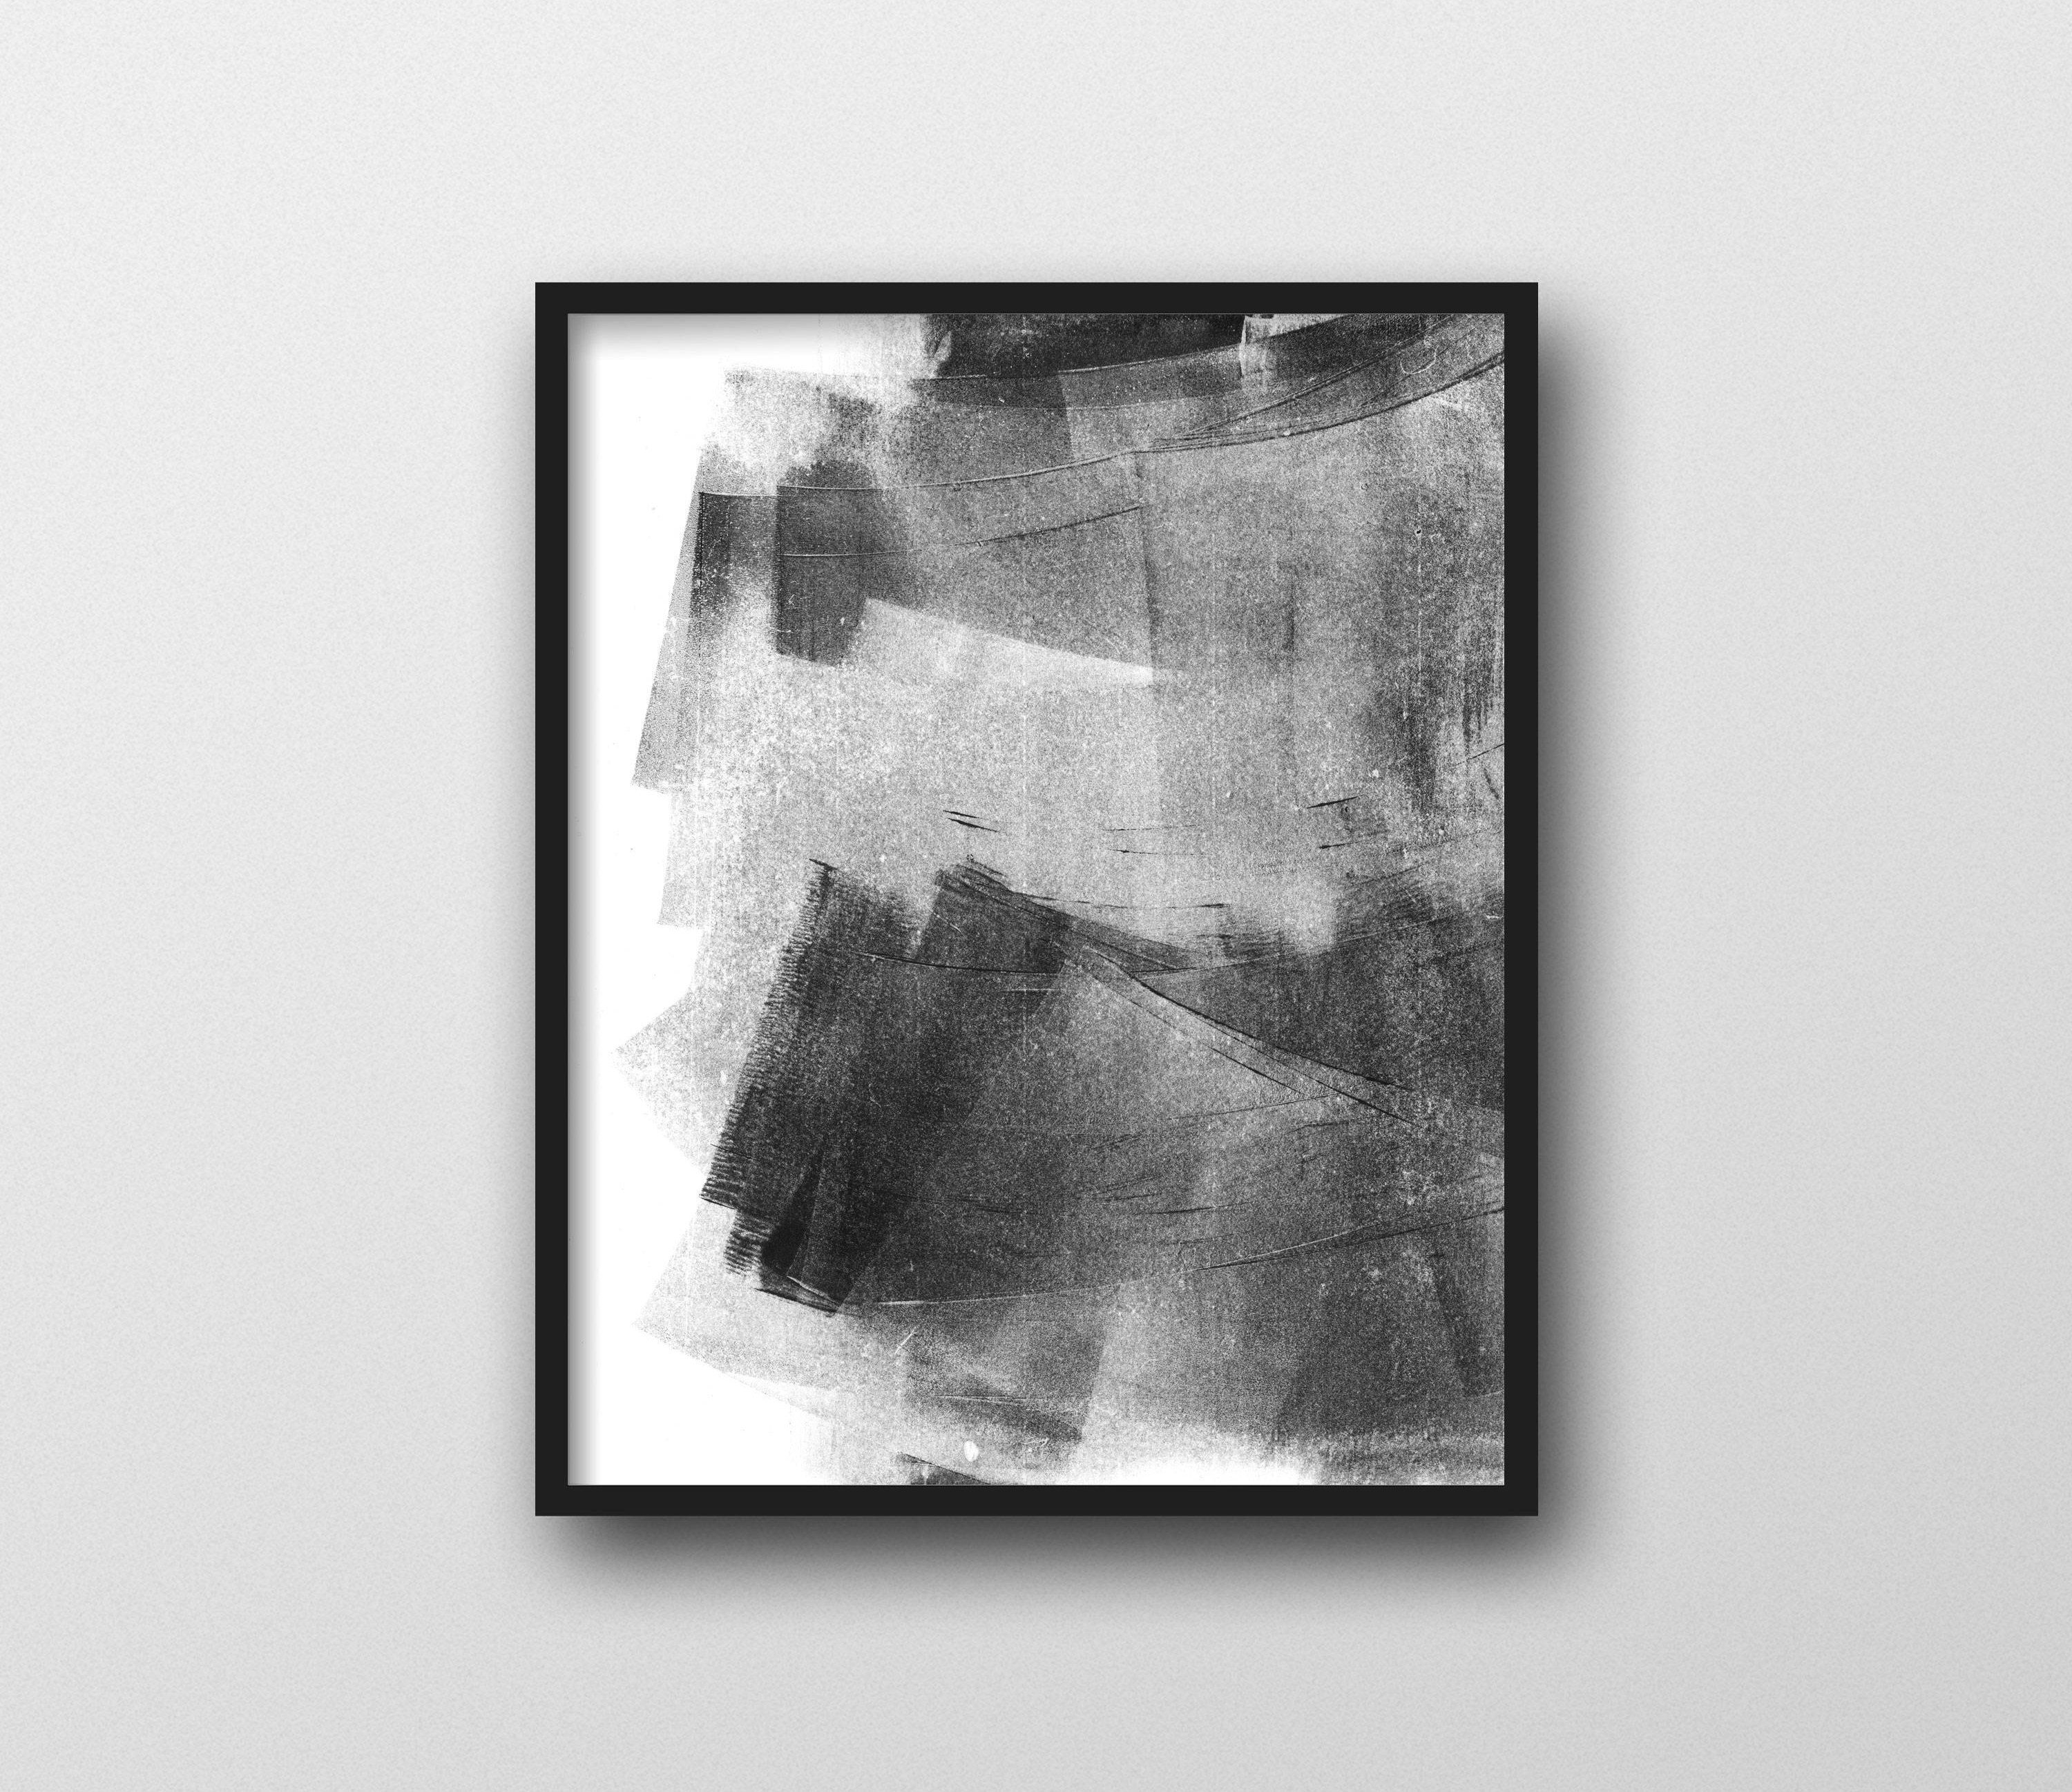 Abstract Art, Black And White Wall Art, Minimalist Painting, Black Pertaining To Most Recent Grey And White Wall Art (View 3 of 20)